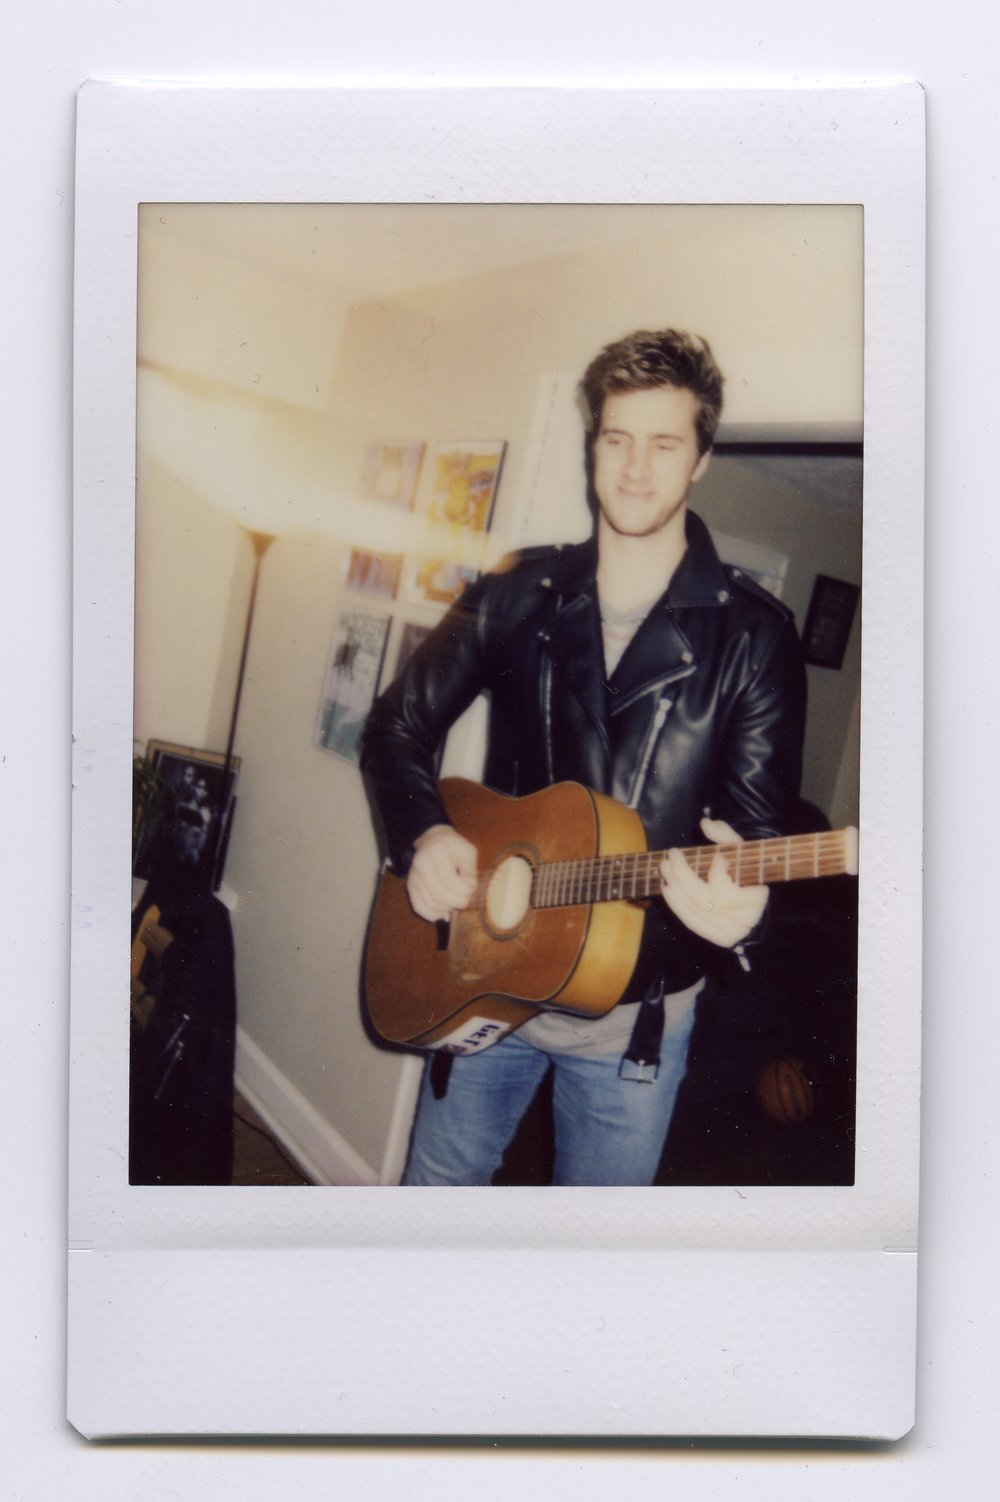 Rock & Roll Fantasy - Chris Cross - Shot on Fujifilm Neo90 Camera with Fuji Instant Film, Nashville, TN